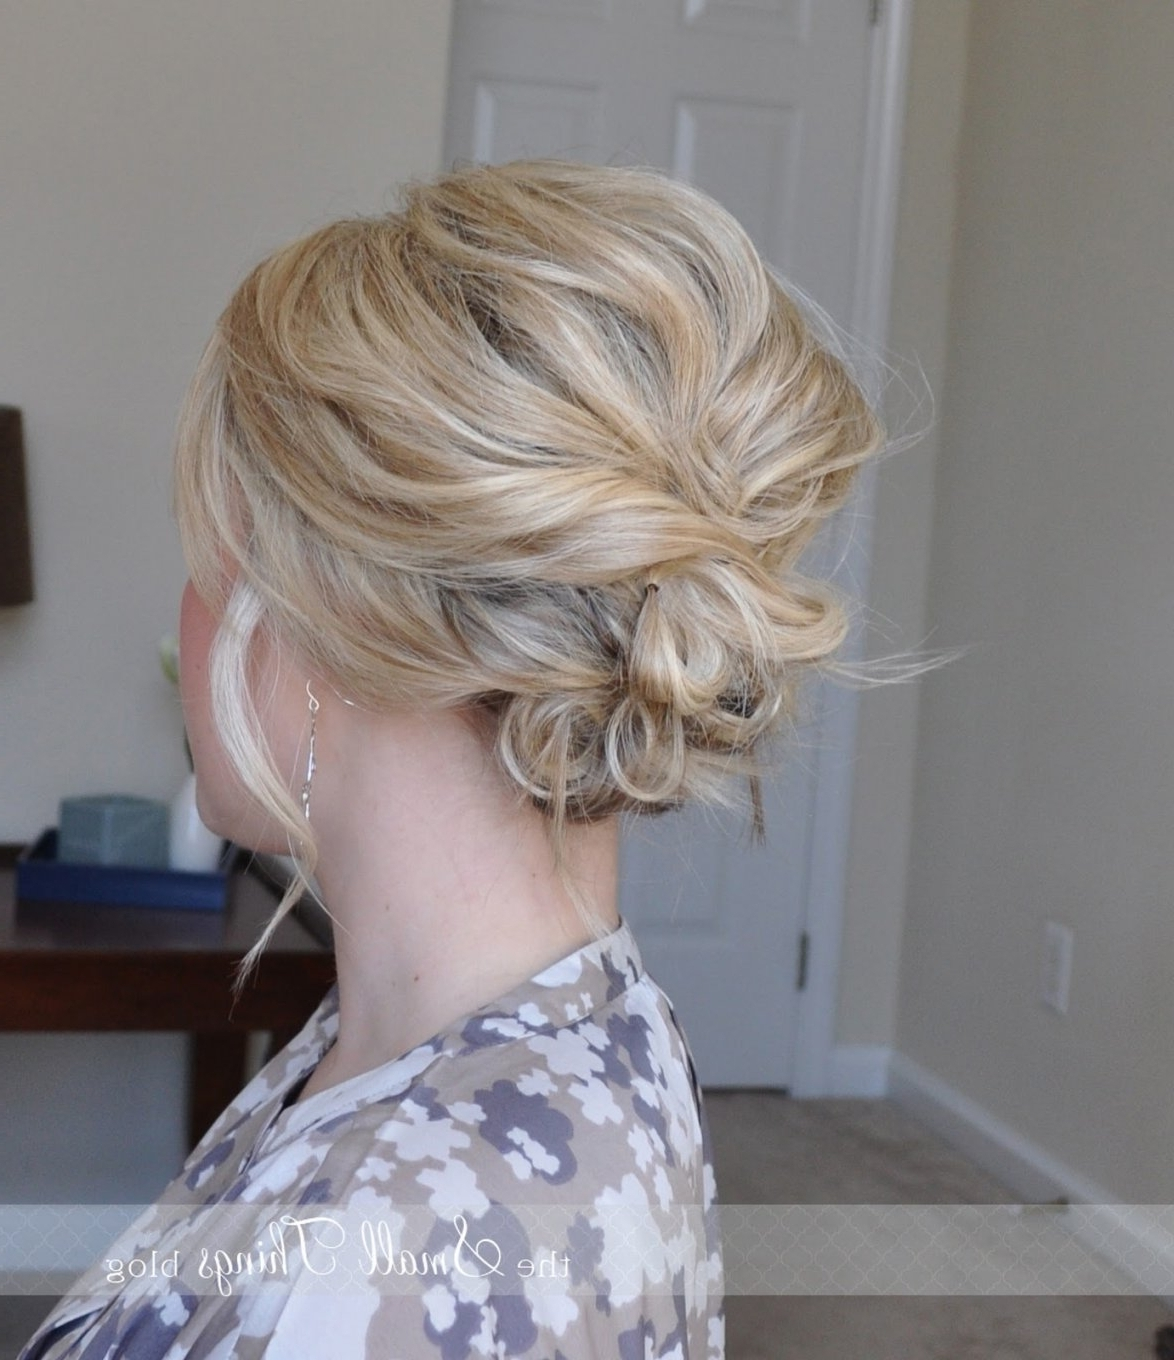 Beach Wedding Hairstyles For Medium Length Hair – Hairstyle For Intended For Preferred Beach Wedding Hairstyles For Medium Length Hair (View 5 of 15)